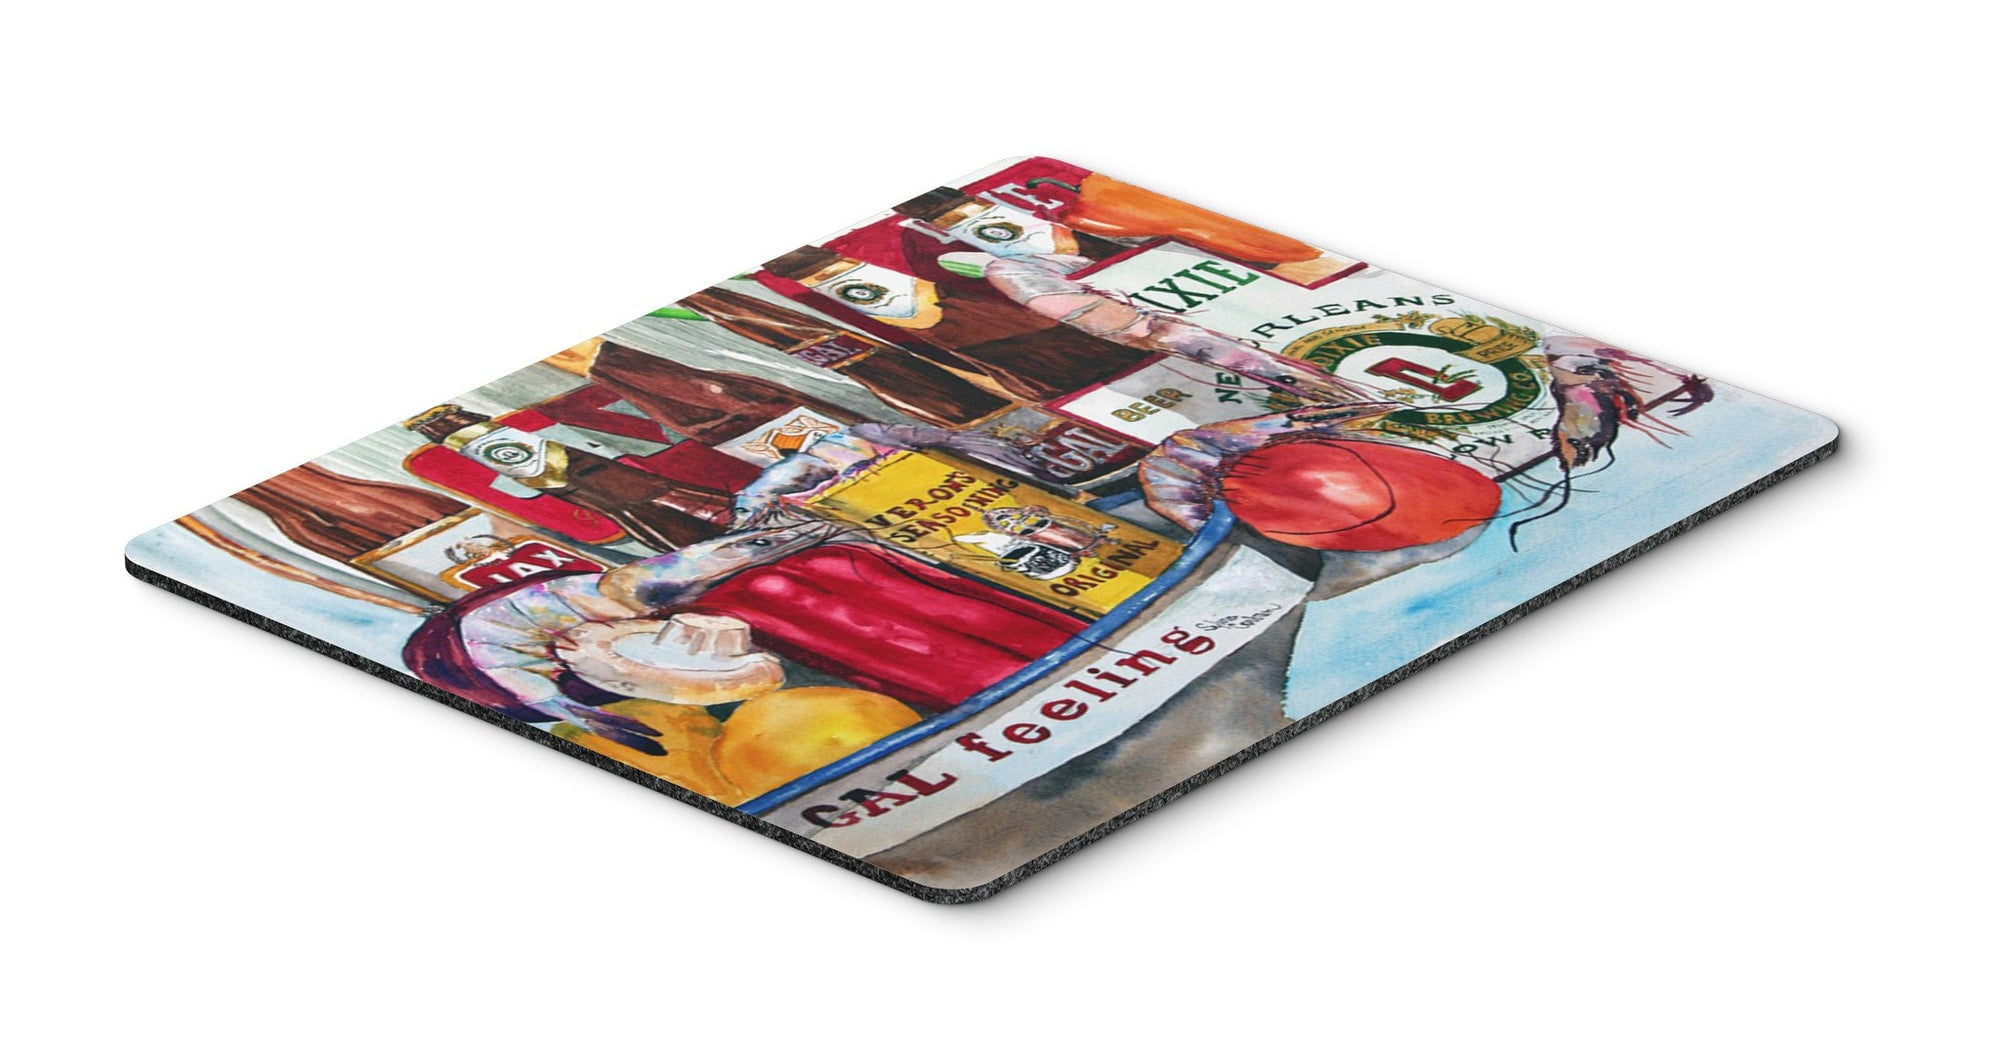 Buy this Veron's and New Orleans Beers Mouse pad, hot pad, or trivet